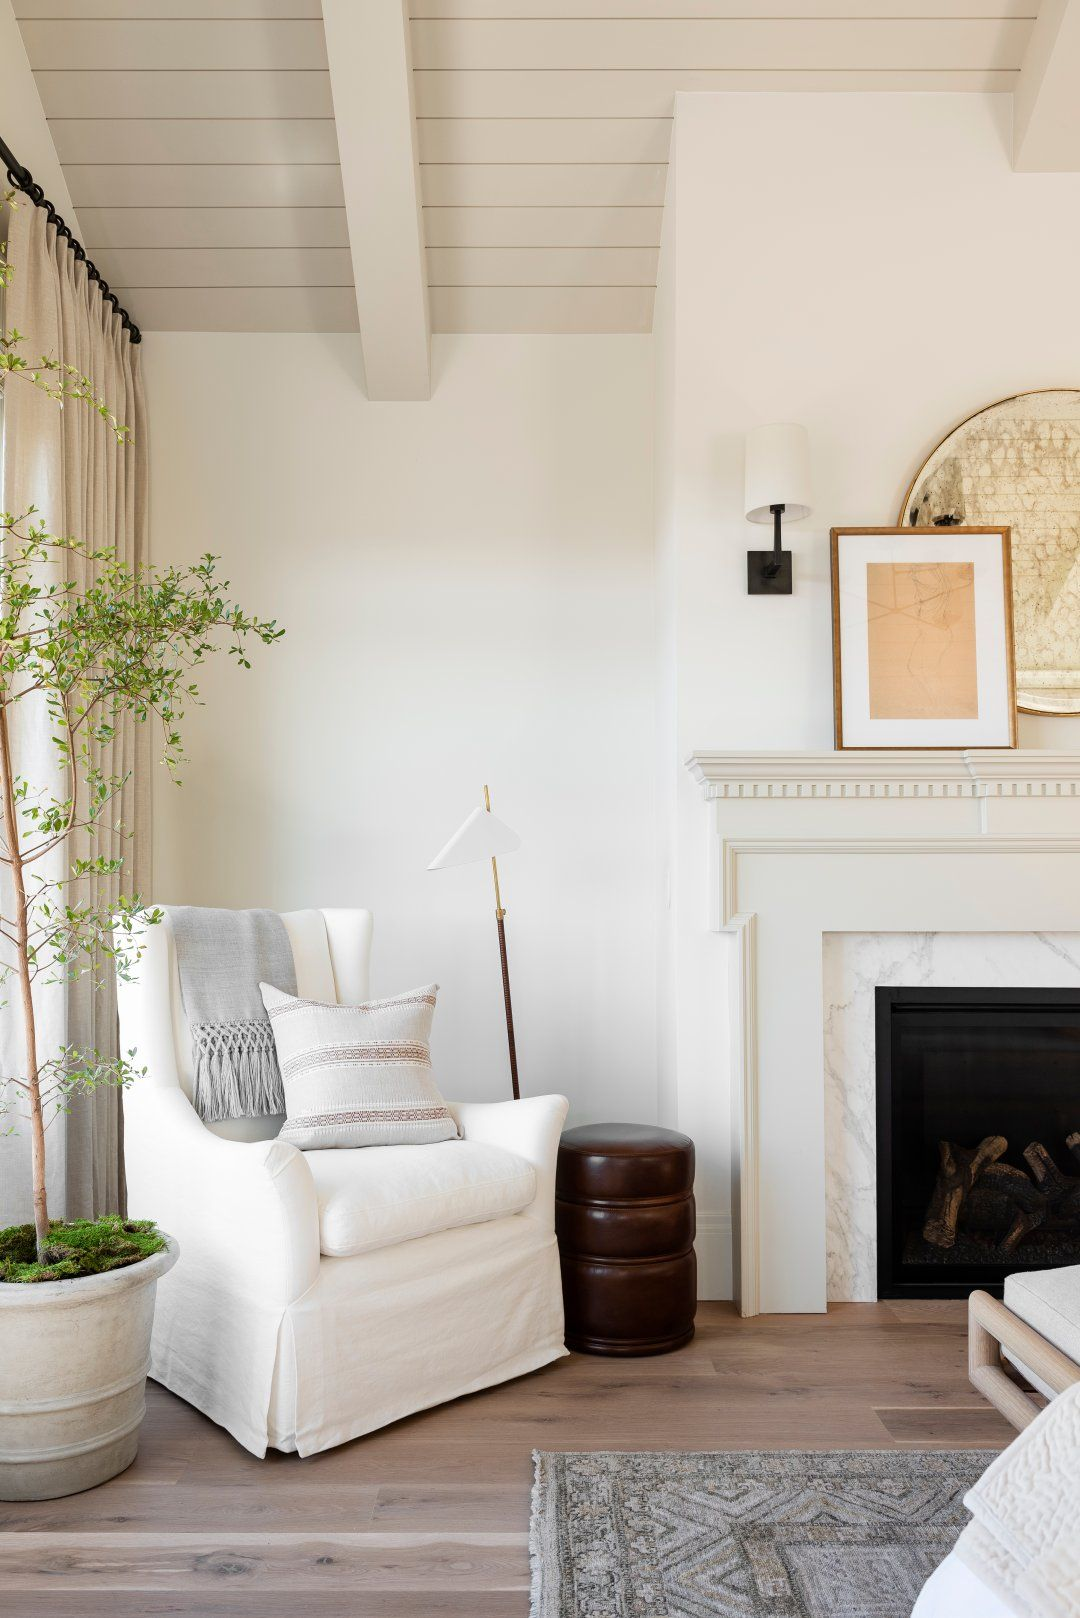 Mixing Styles in The Master - Studio McGee   Mcgee home, Mcgee home master  bedroom, Home decor